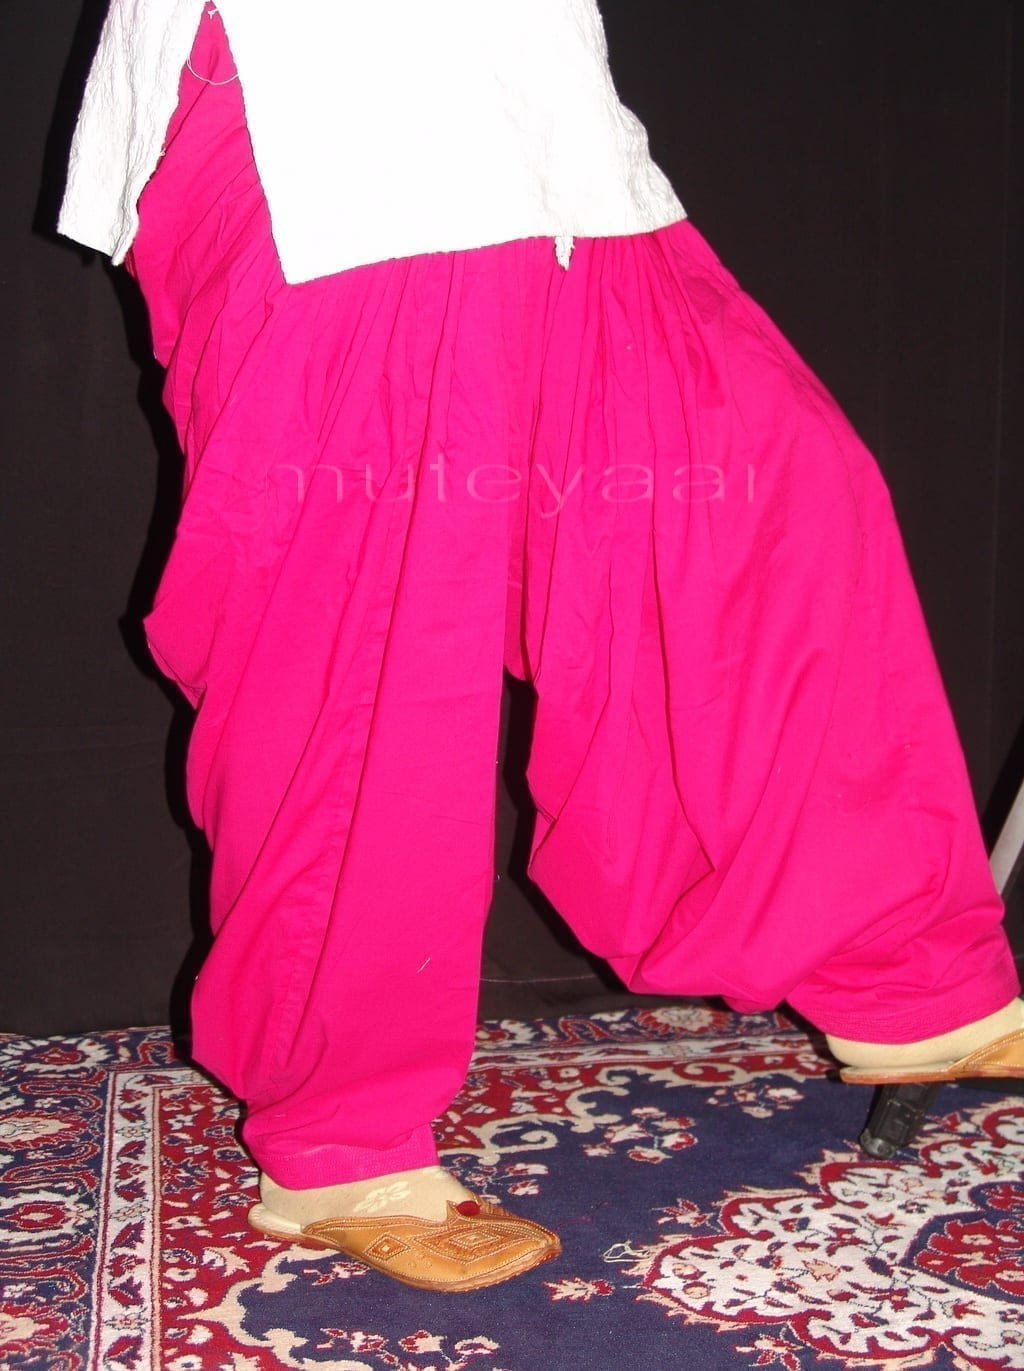 100% PURE COTTON PATIALA SALWAR shalwar from Patiyala City !! 10